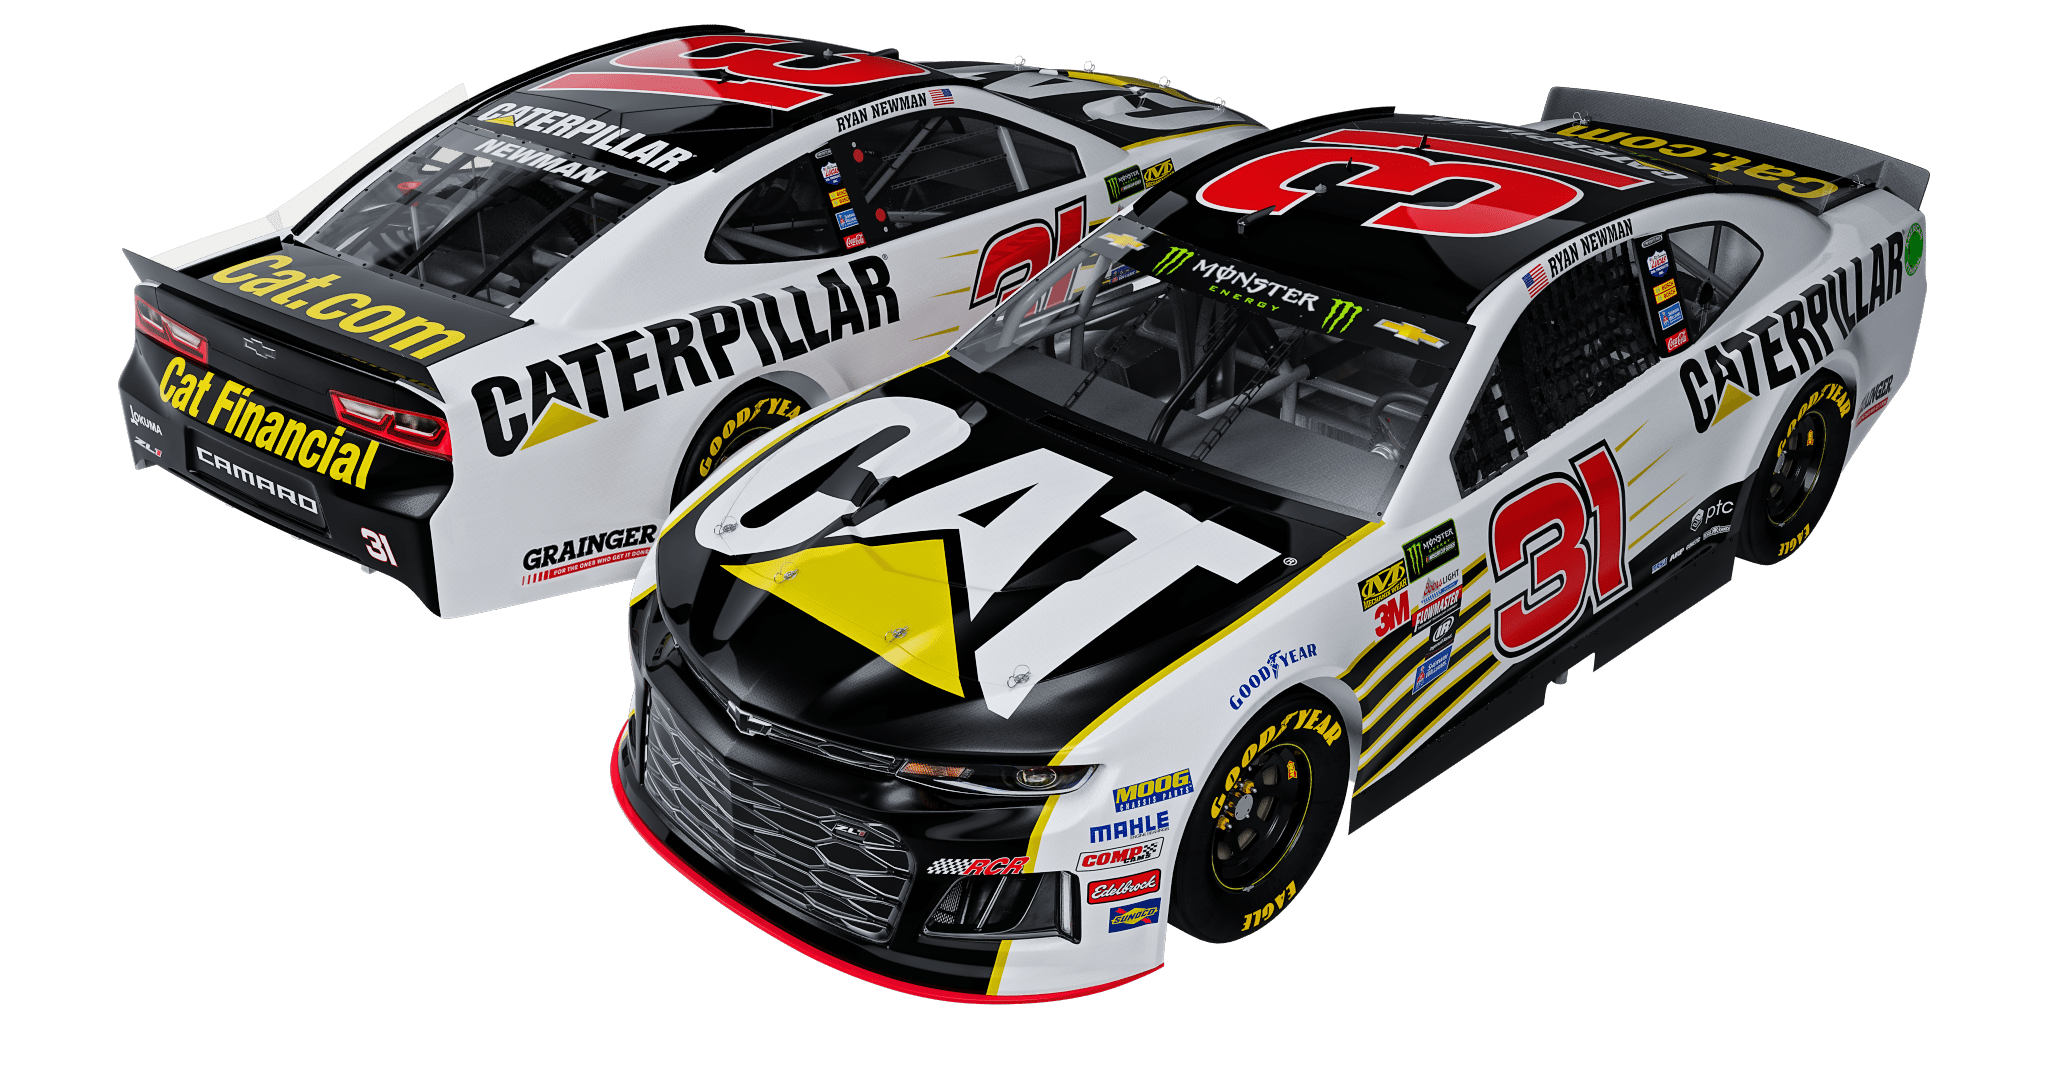 Ryan Newman 2018 No. 31 Caterpillar Chevrolet 1:24 Diecast